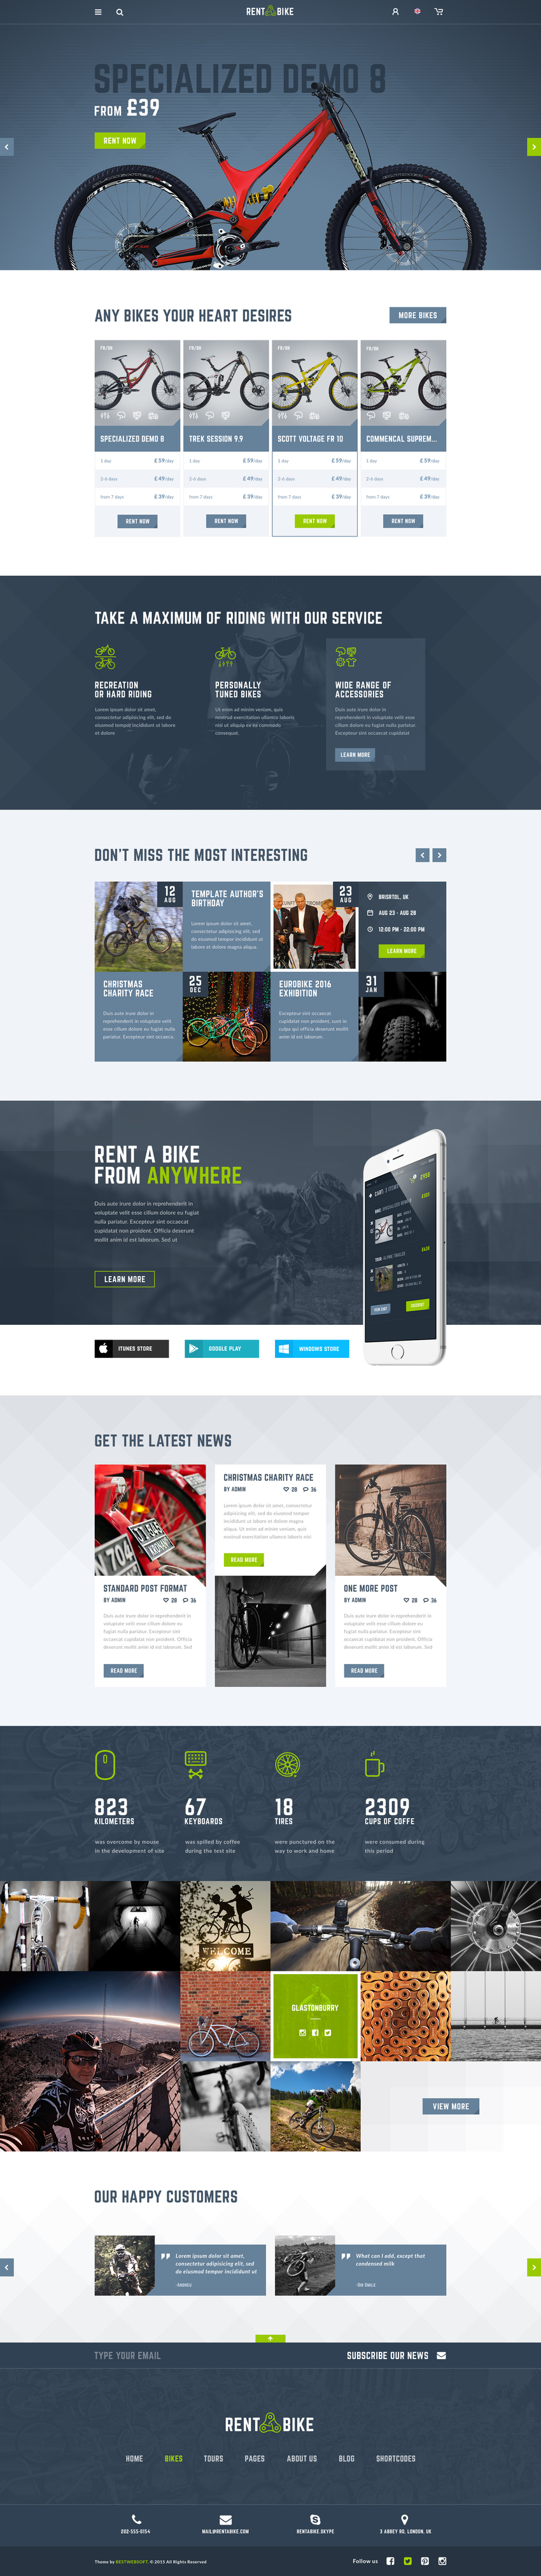 rent-a-bike-rental-booking-psd-template-2